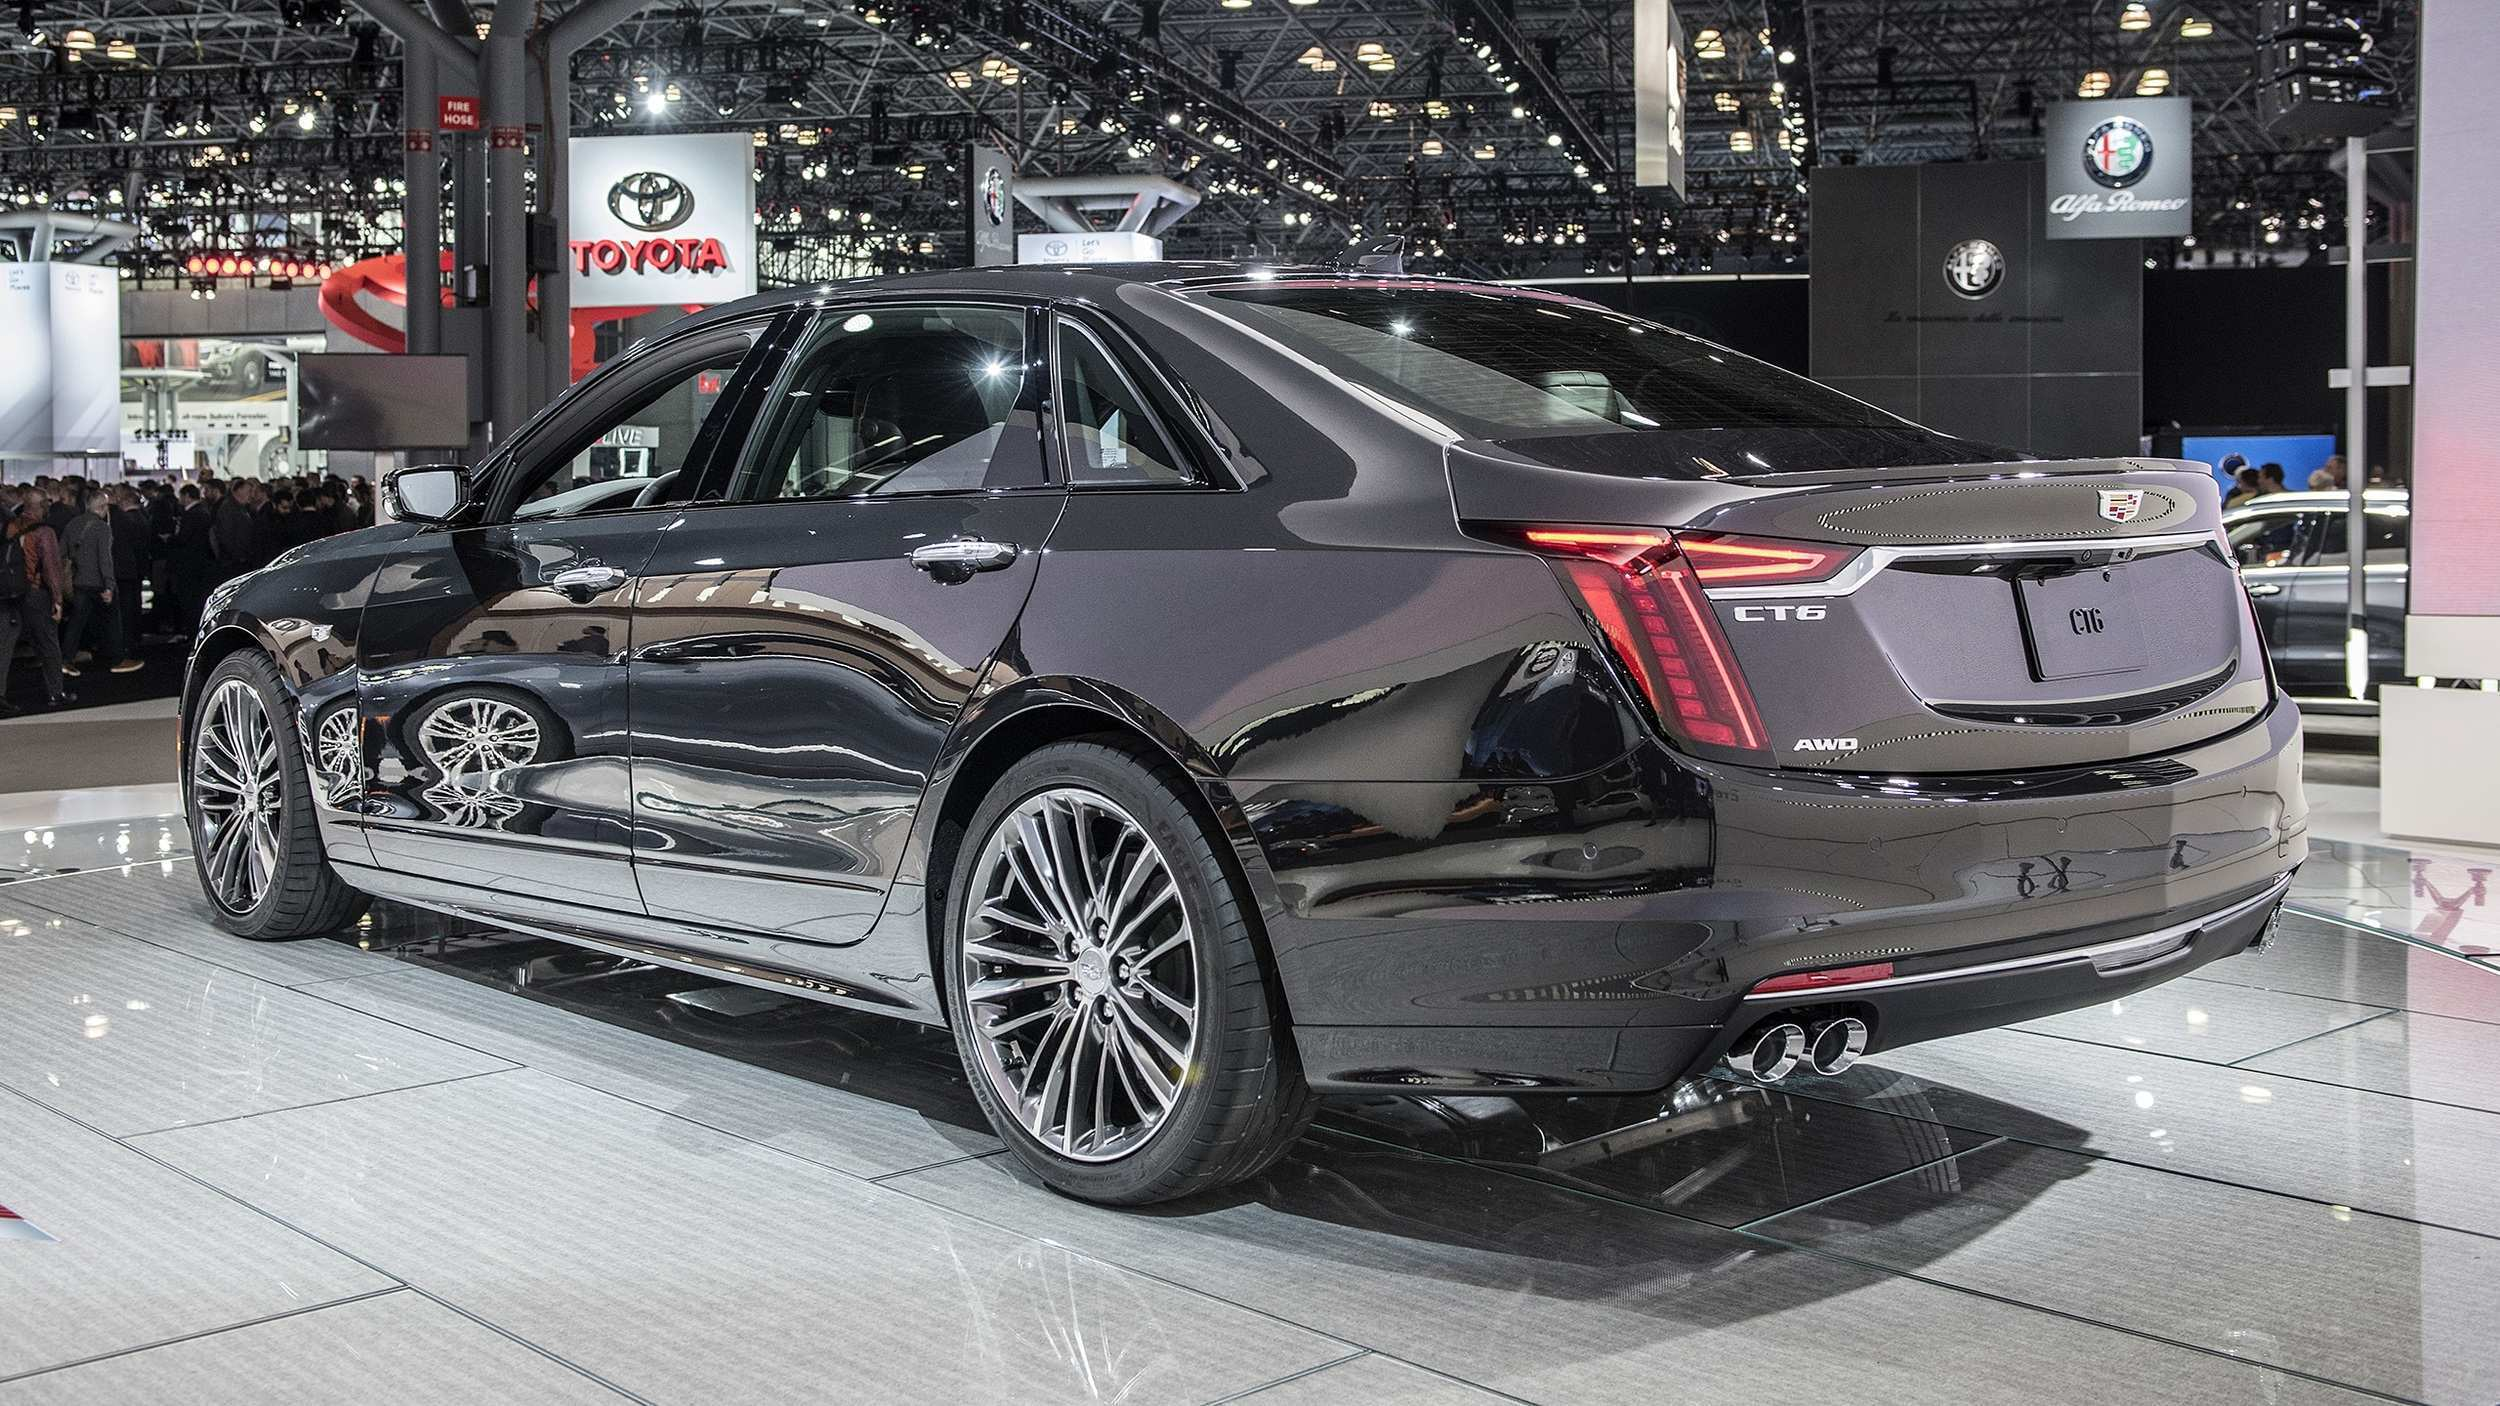 62 All New New Cadillac Ct6 V Sport 2019 Picture Release Date And Review Wallpaper with New Cadillac Ct6 V Sport 2019 Picture Release Date And Review